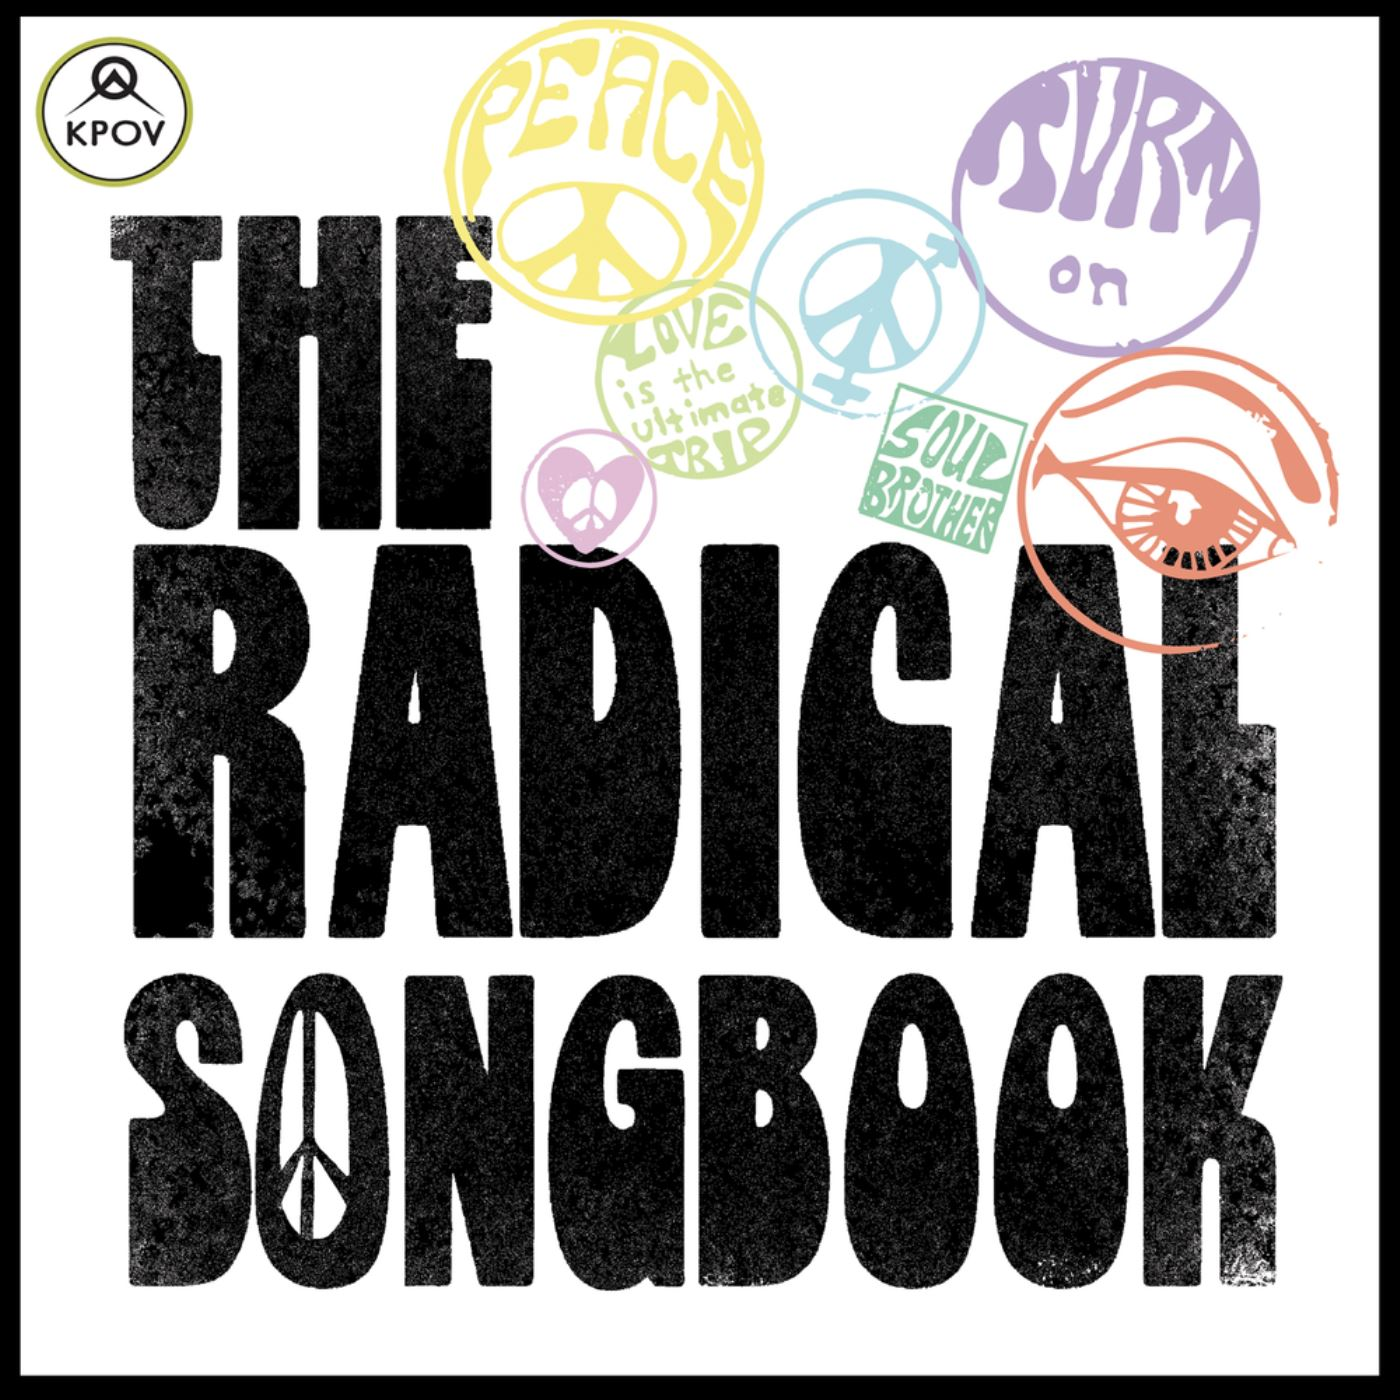 - The Radical Songbook podcast, with host Michael Funke, features interviews and conversations with social activists about the work they are doing in Central Oregon and beyond. All content originally aired on 88.9fm, KPOV, as part of The Radical Songbook program, Fridays from 10am to noon.